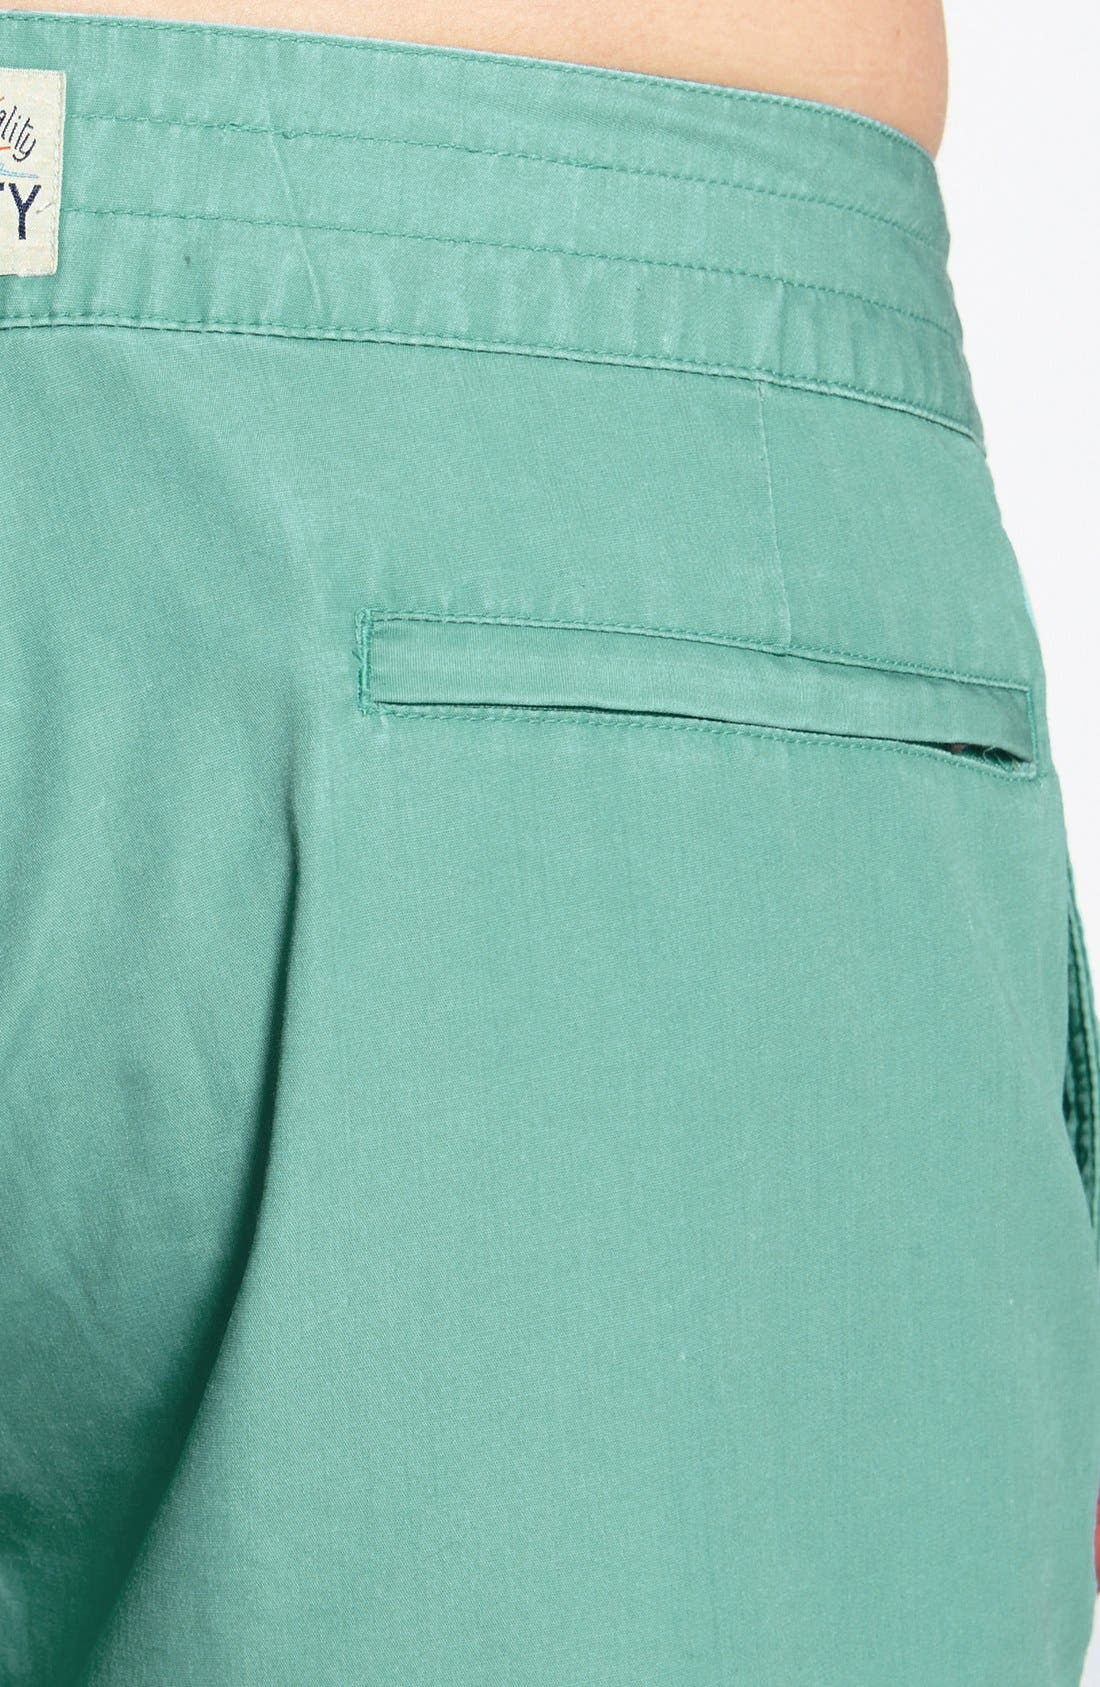 Alternate Image 3  - Faherty 'Classic' Board Shorts